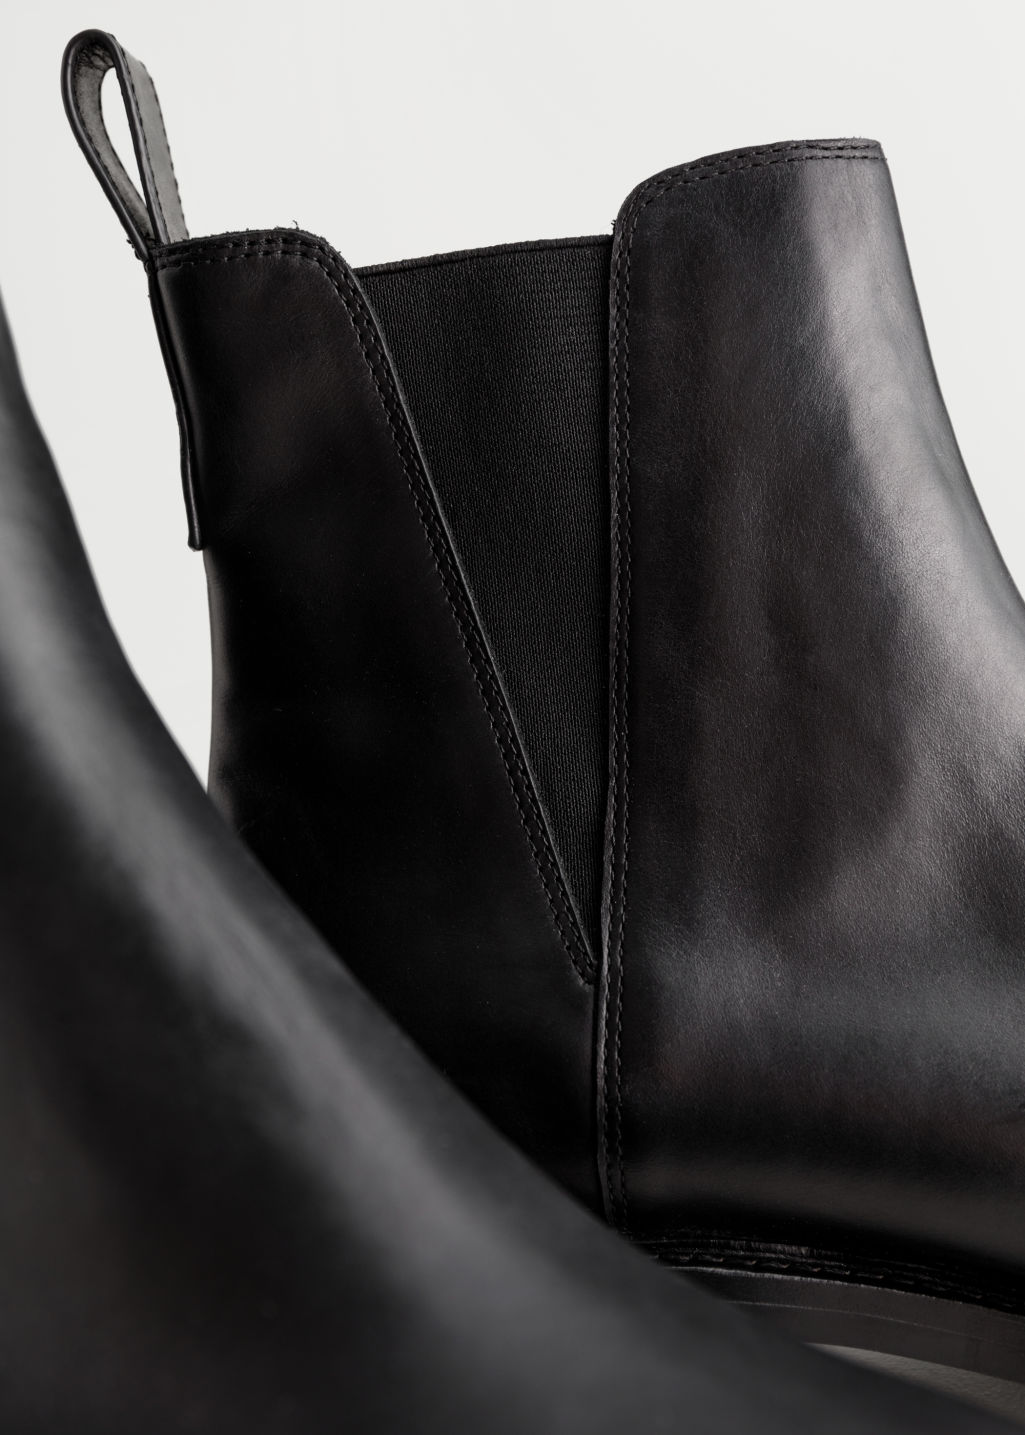 83a0e0ae814 Leather Track Sole Boots - Black - Chelseaboots - & Other Stories